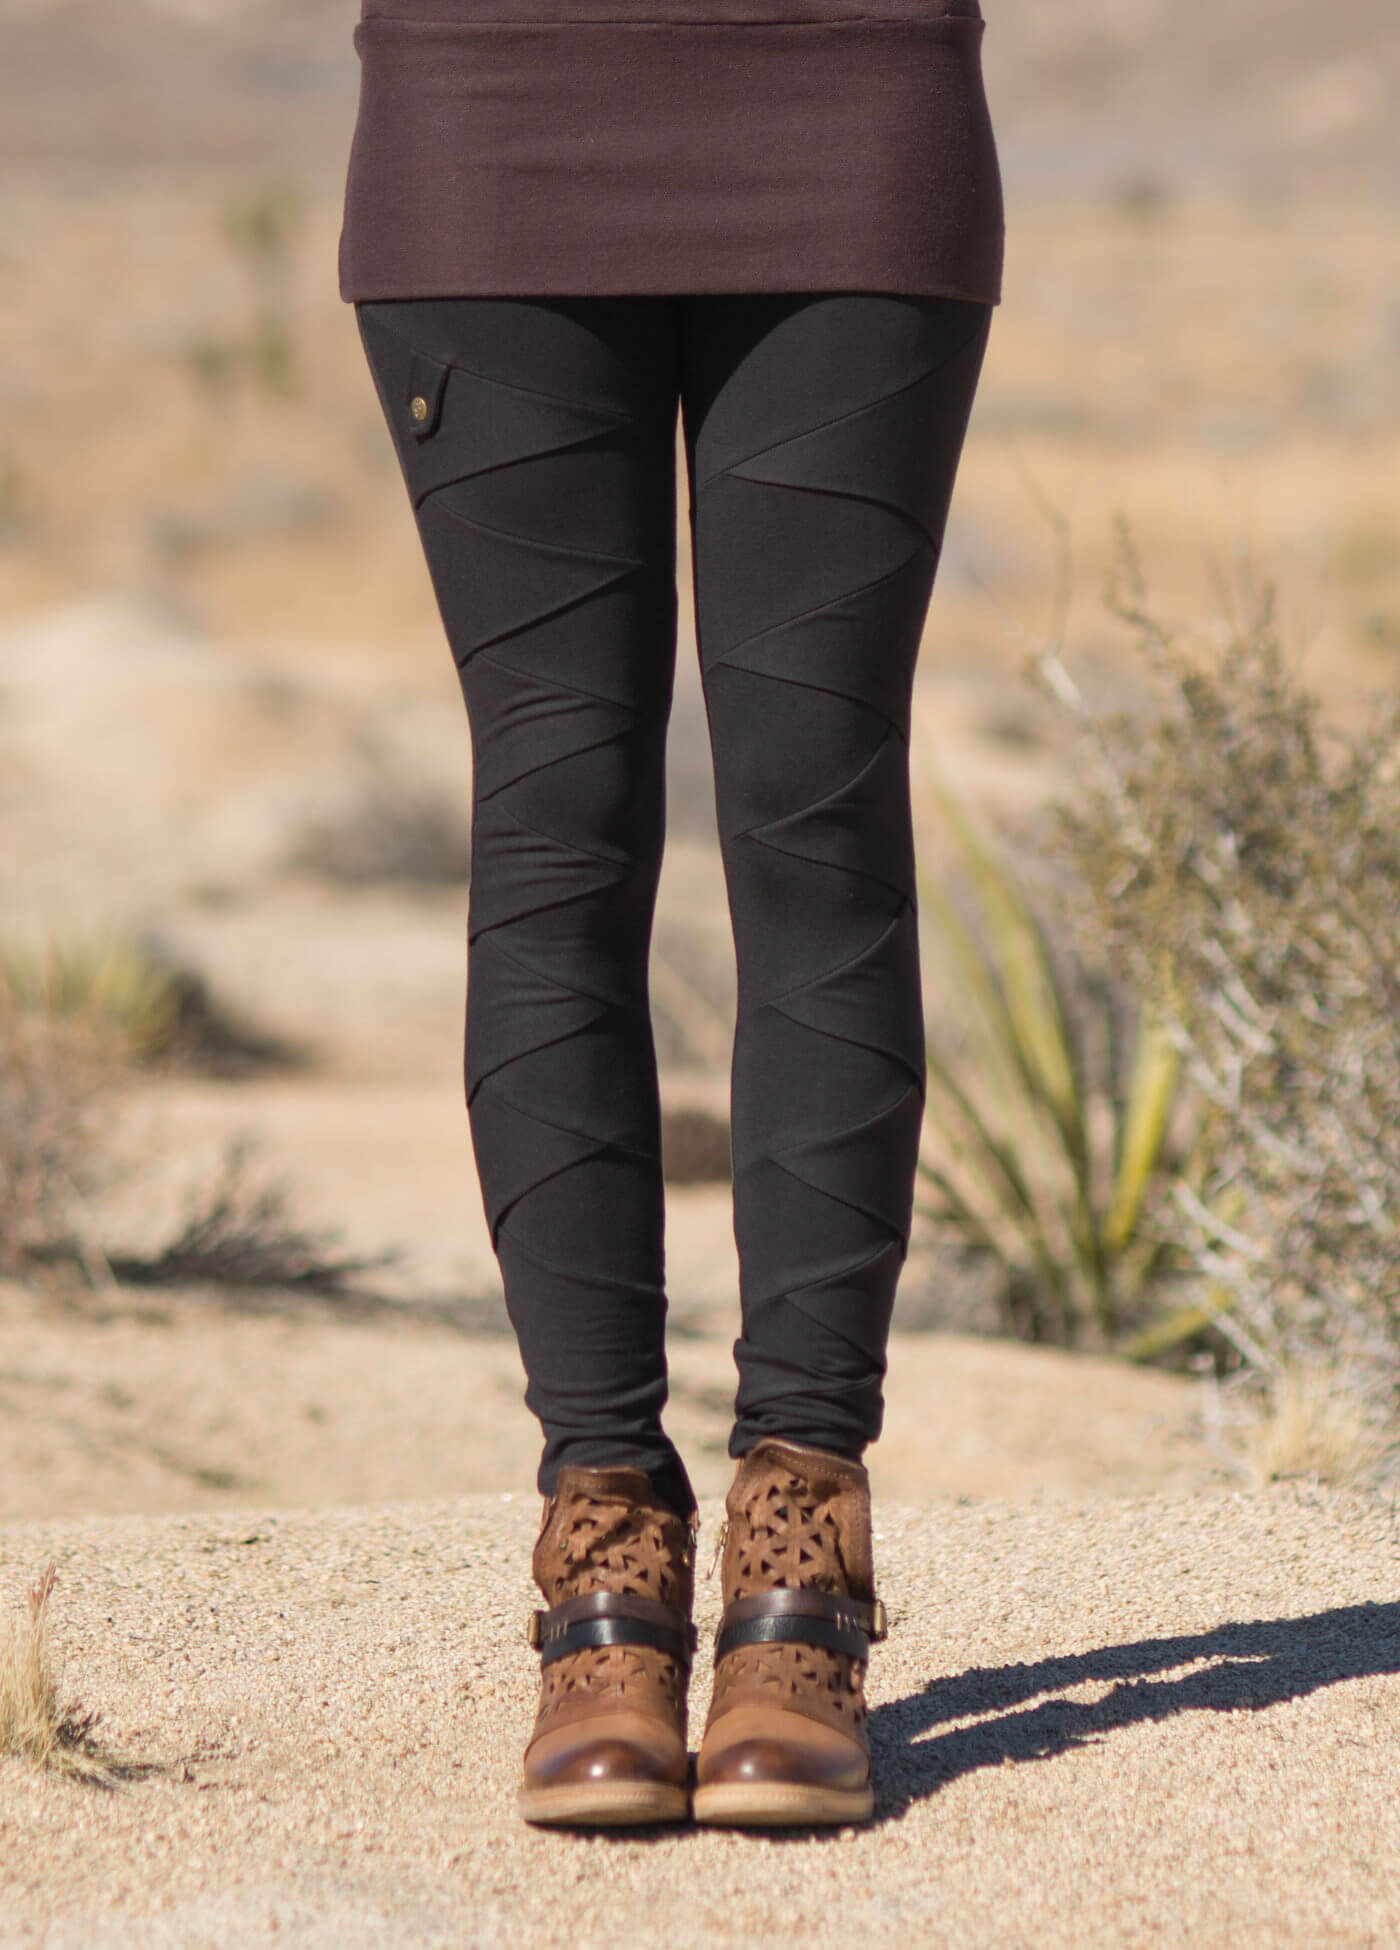 Albacore Leggings in Bamboo & Organic Cotton by Nomads Hemp Wear